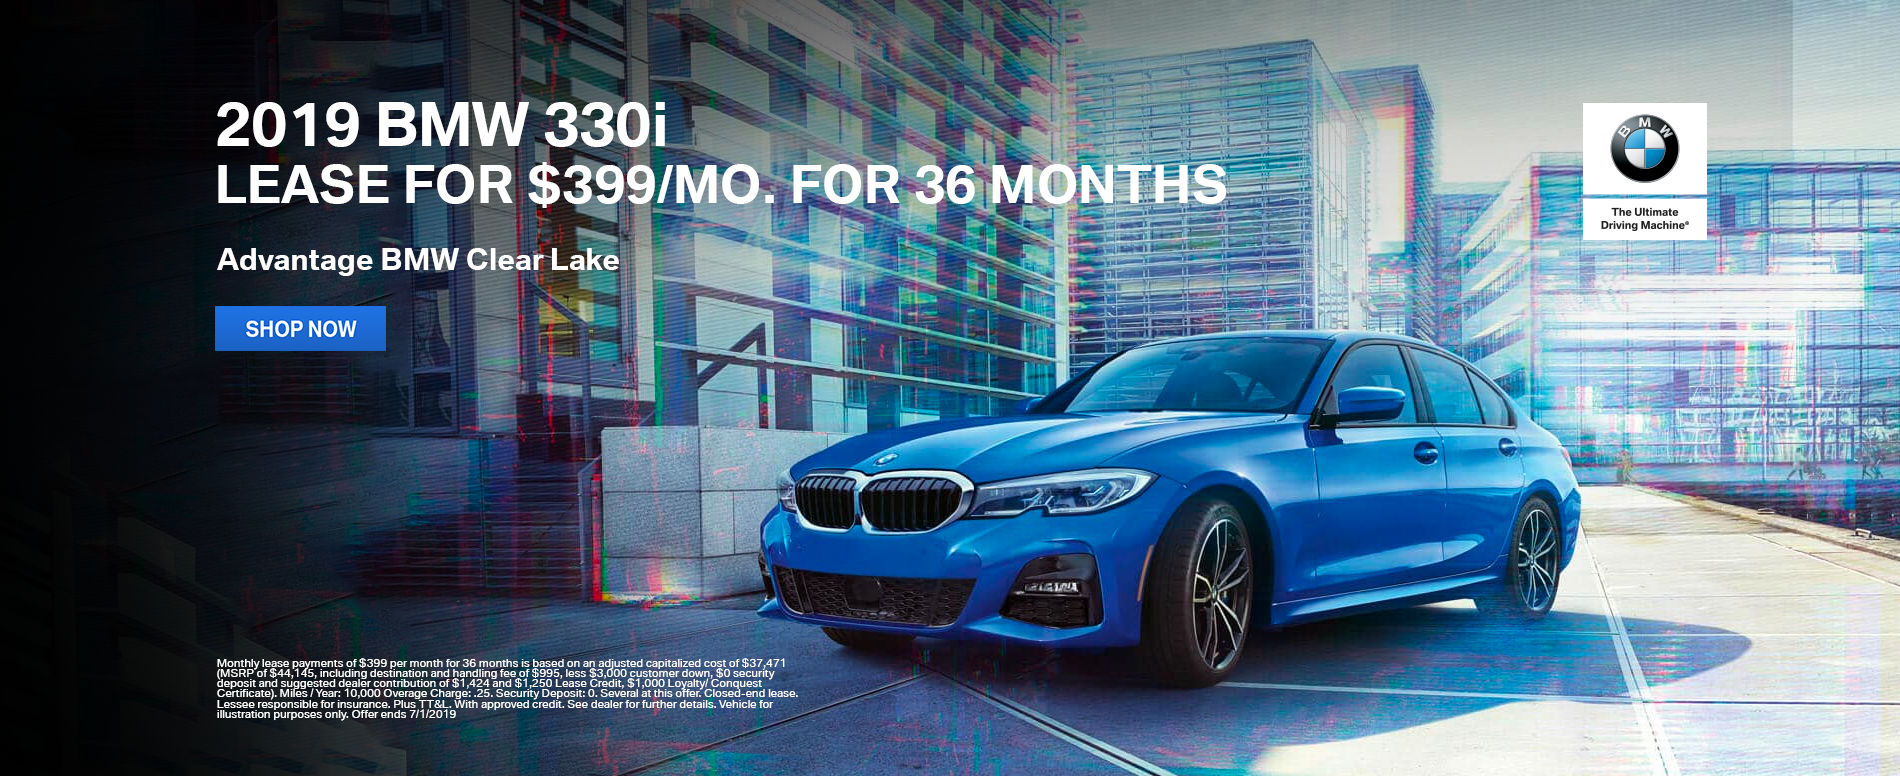 lease-2019-bmw-330i-for-399-per-month-clearlake